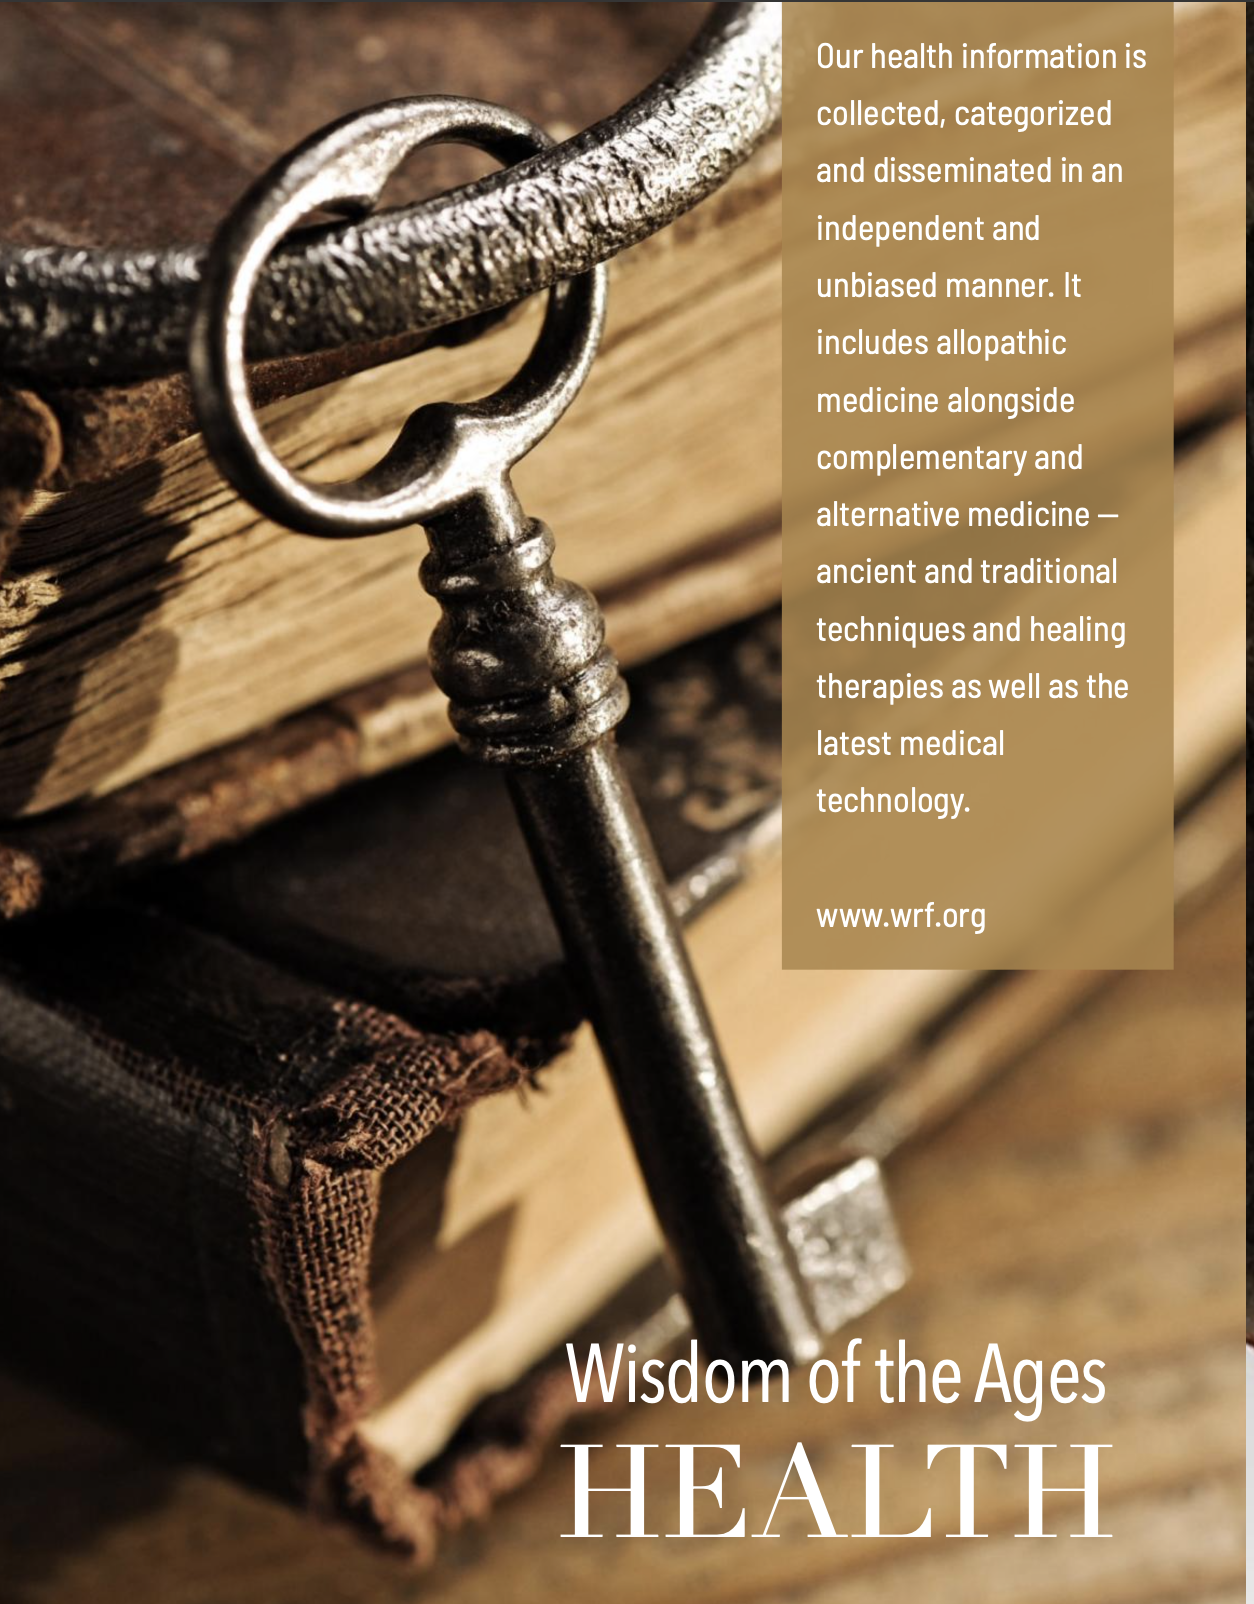 WISDOM OF THE AGES LIBRARY – Steve A. Ross, Ph.D.